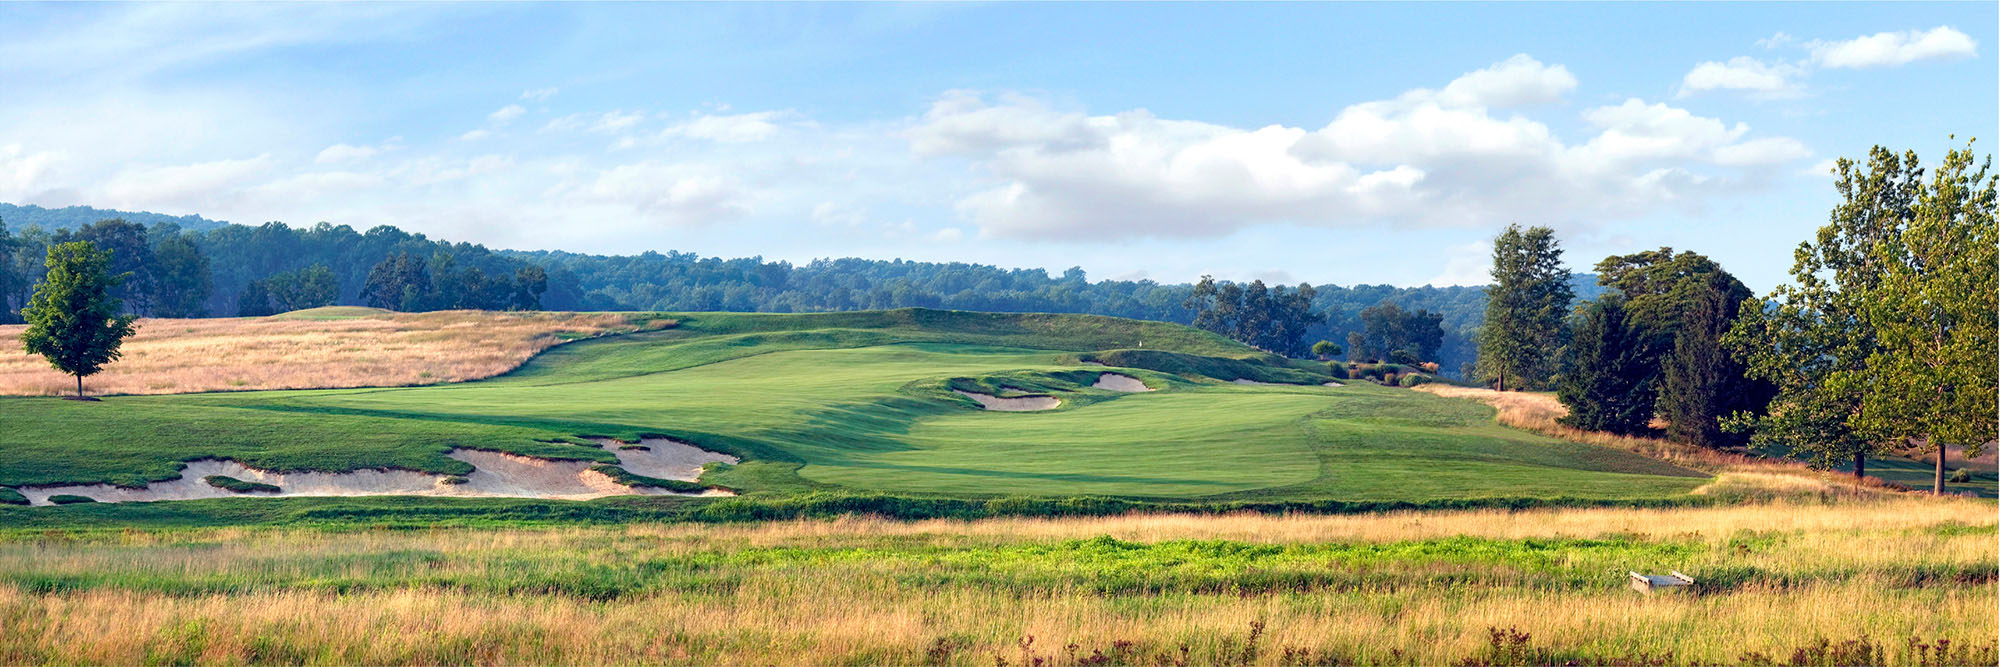 Golf Course Image - French Creek No. 9